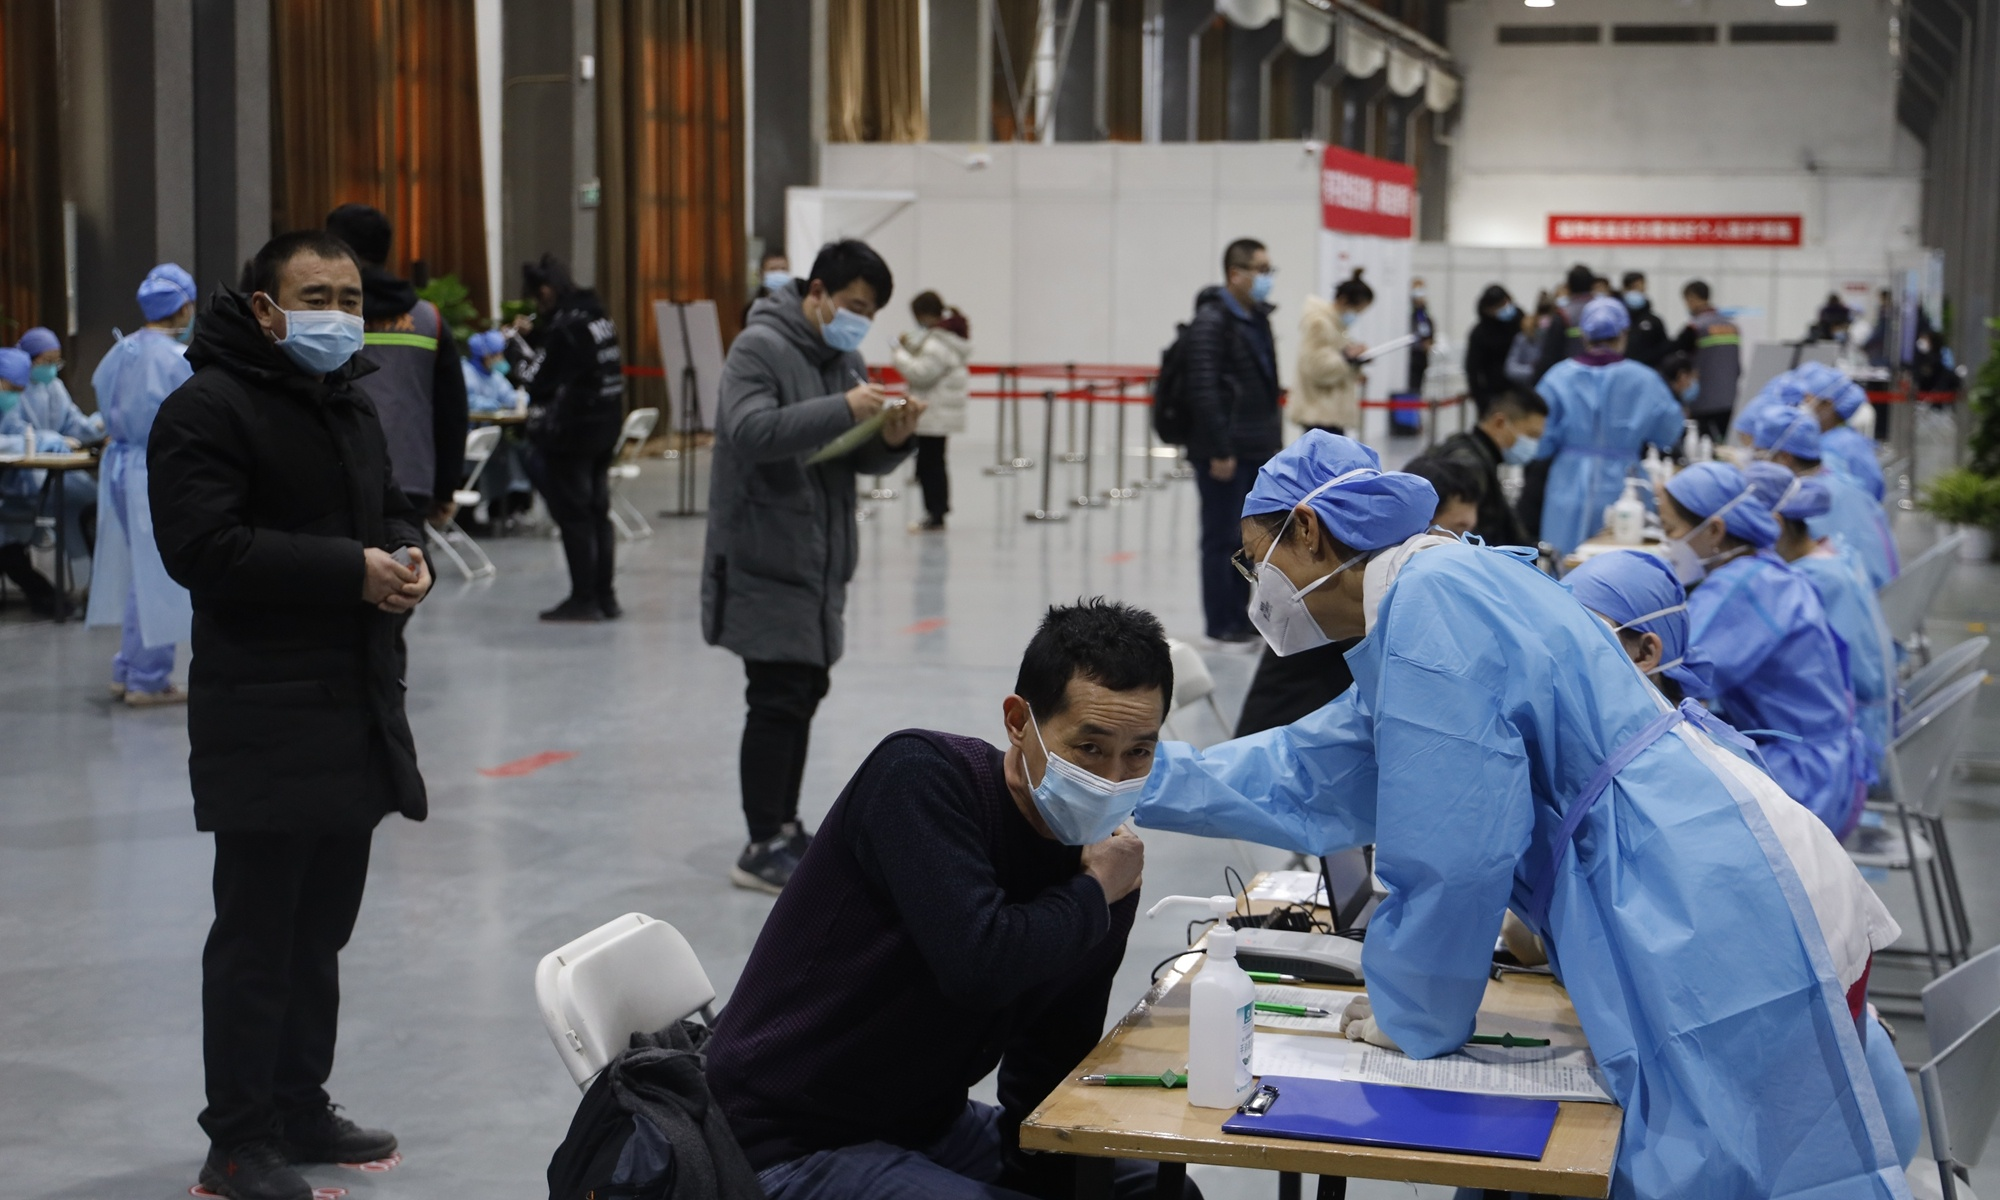 China to administer 40 doses of COVID-19 vaccines per 100 people by June: Zhong Nanshan